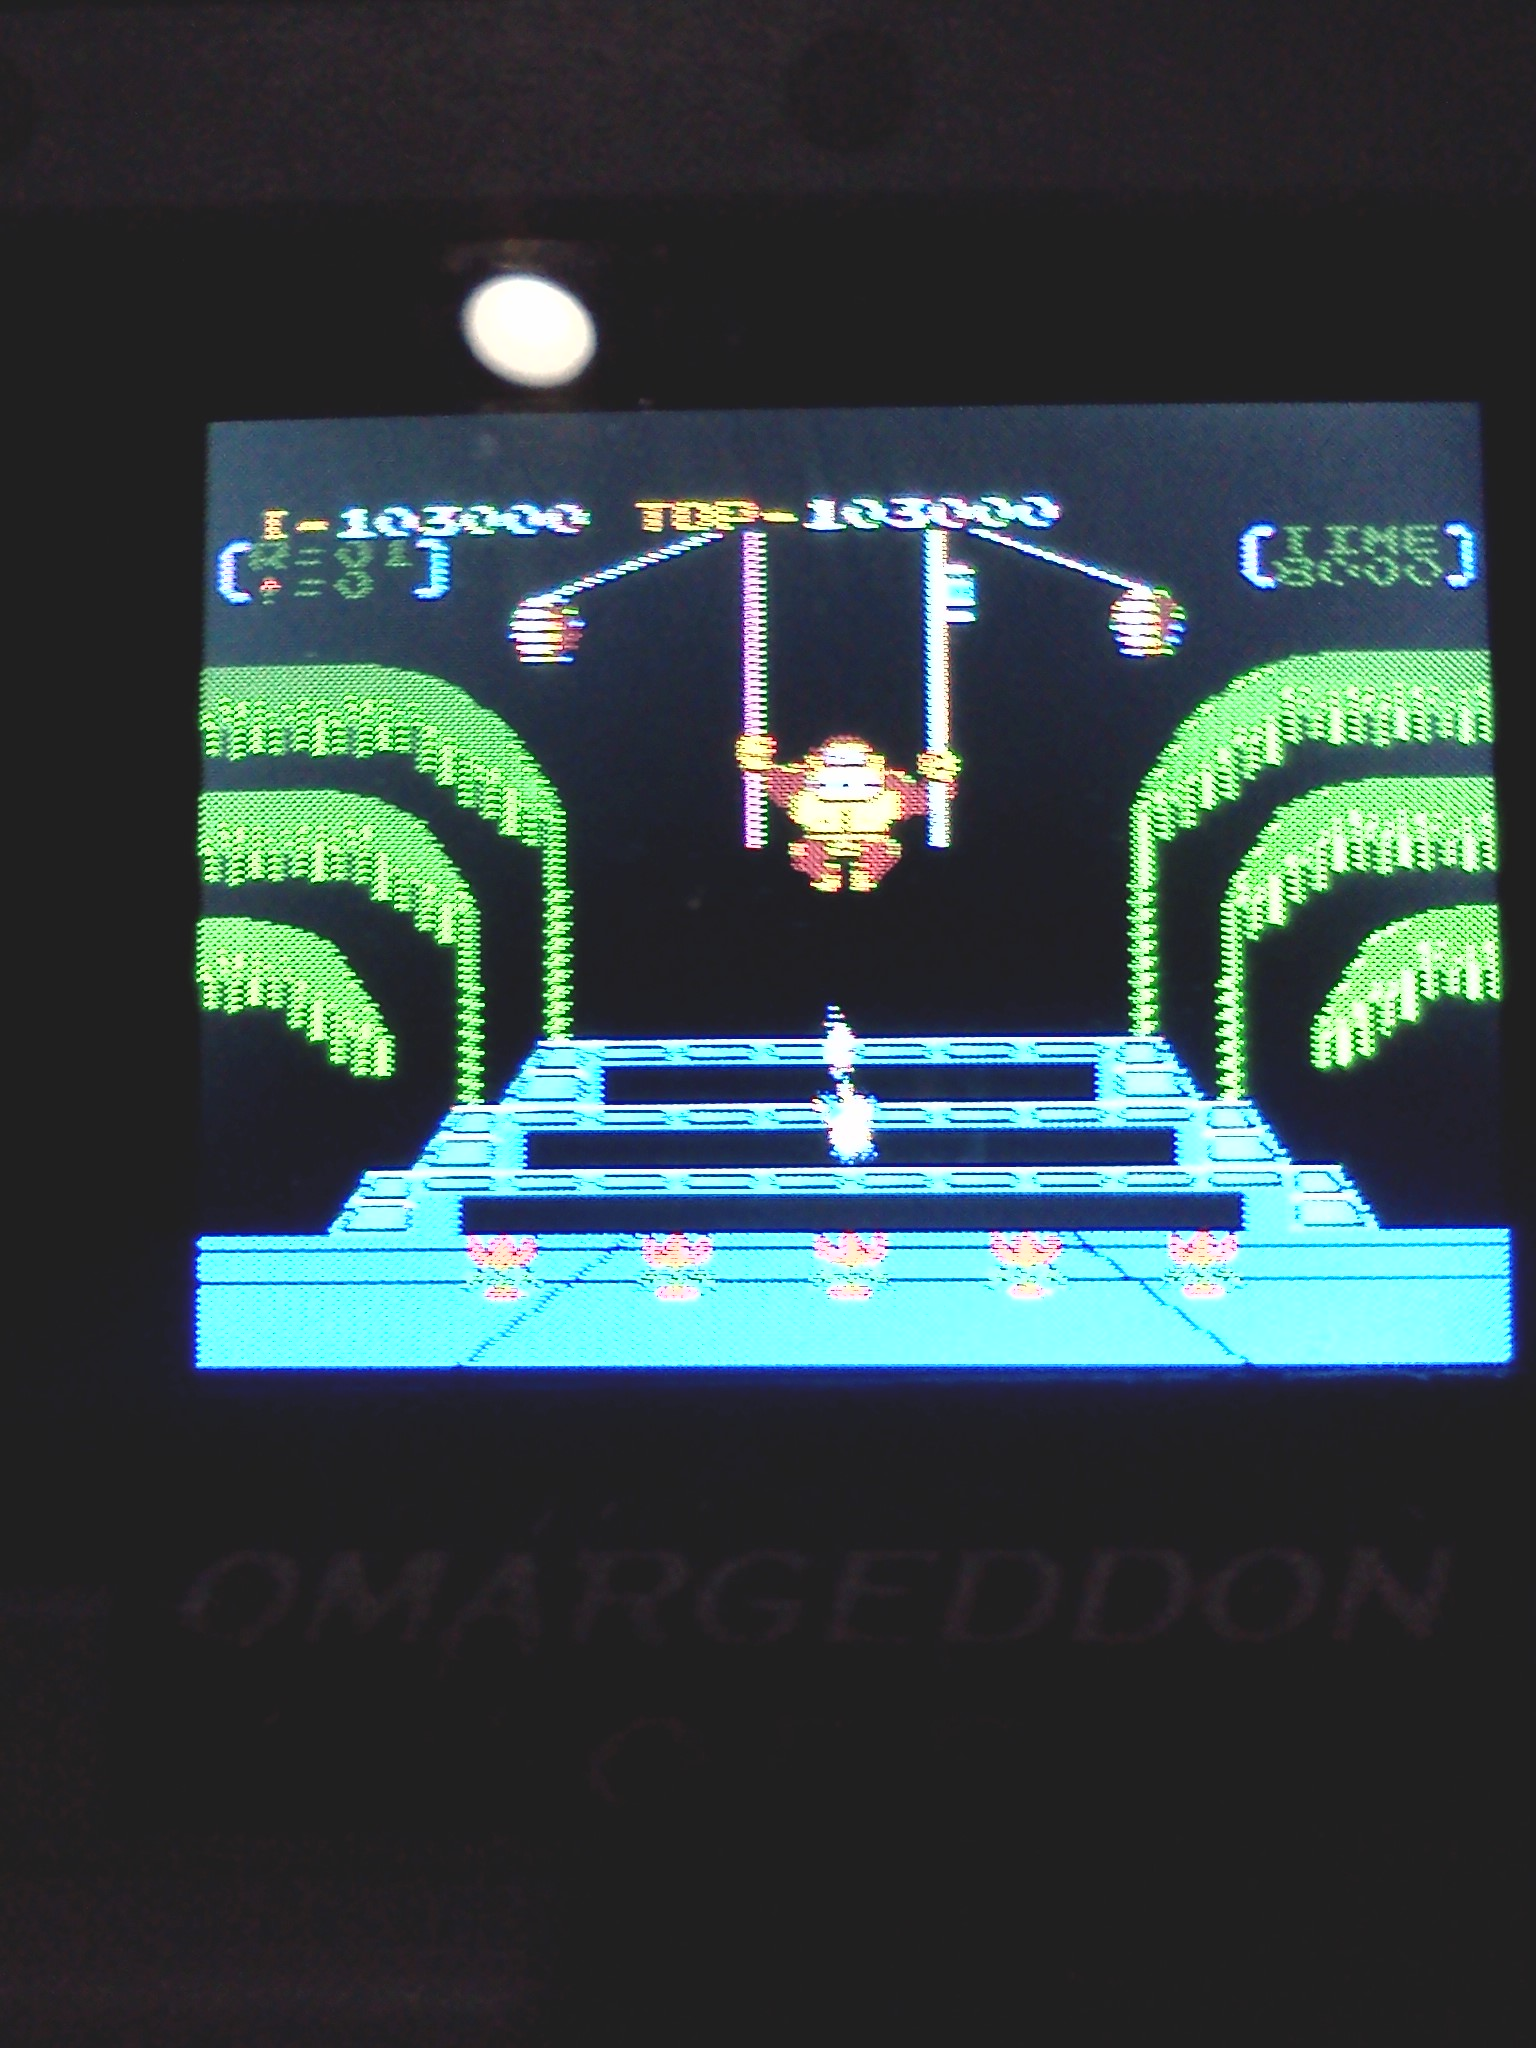 Donkey Kong 3: Game A 103,000 points